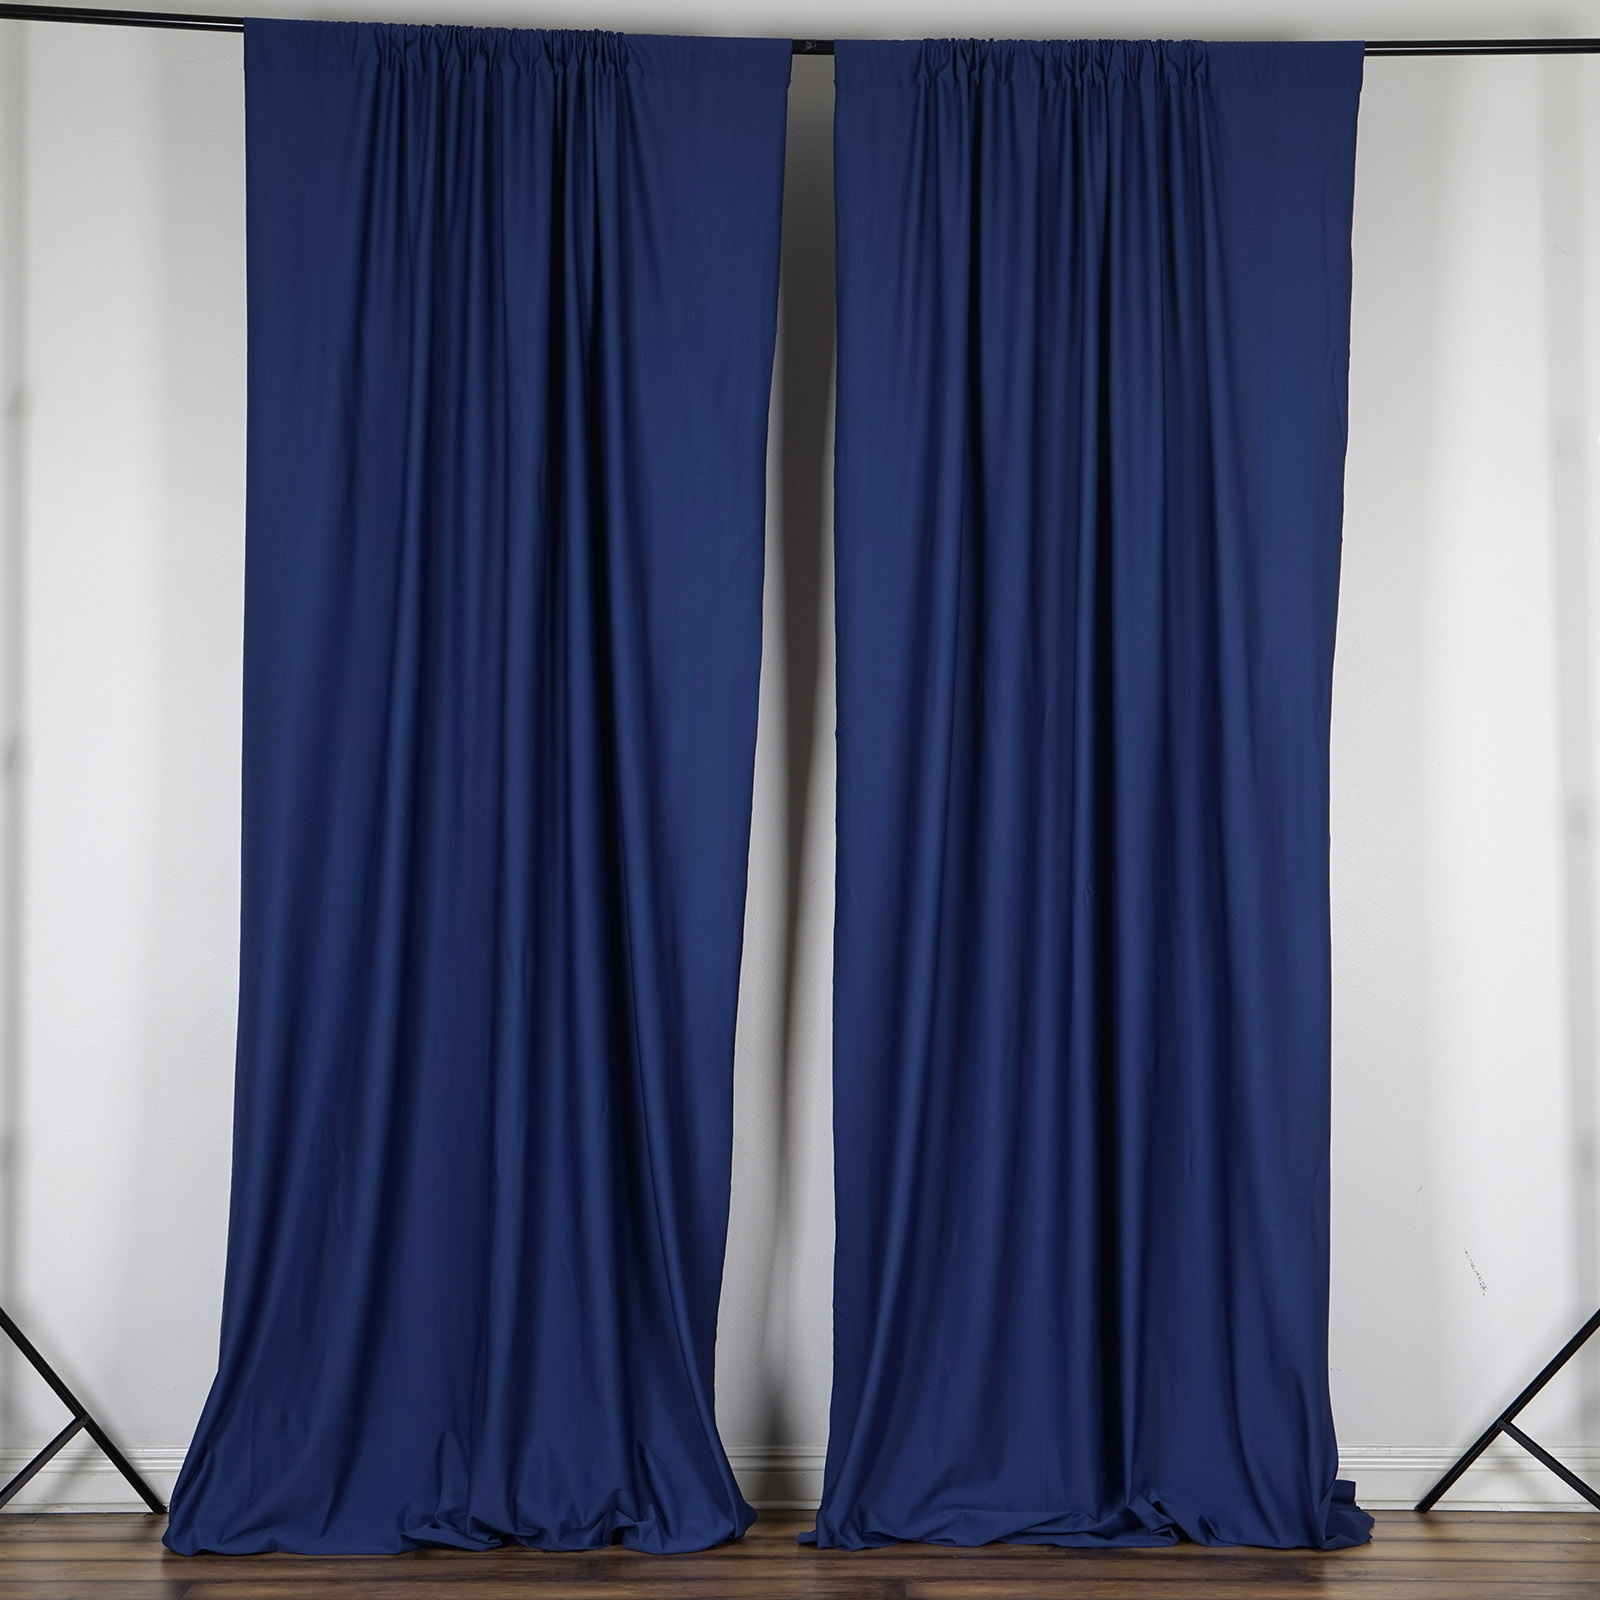 navy blue 10 x 10 ft polyester backdrop curtains drapes panels home